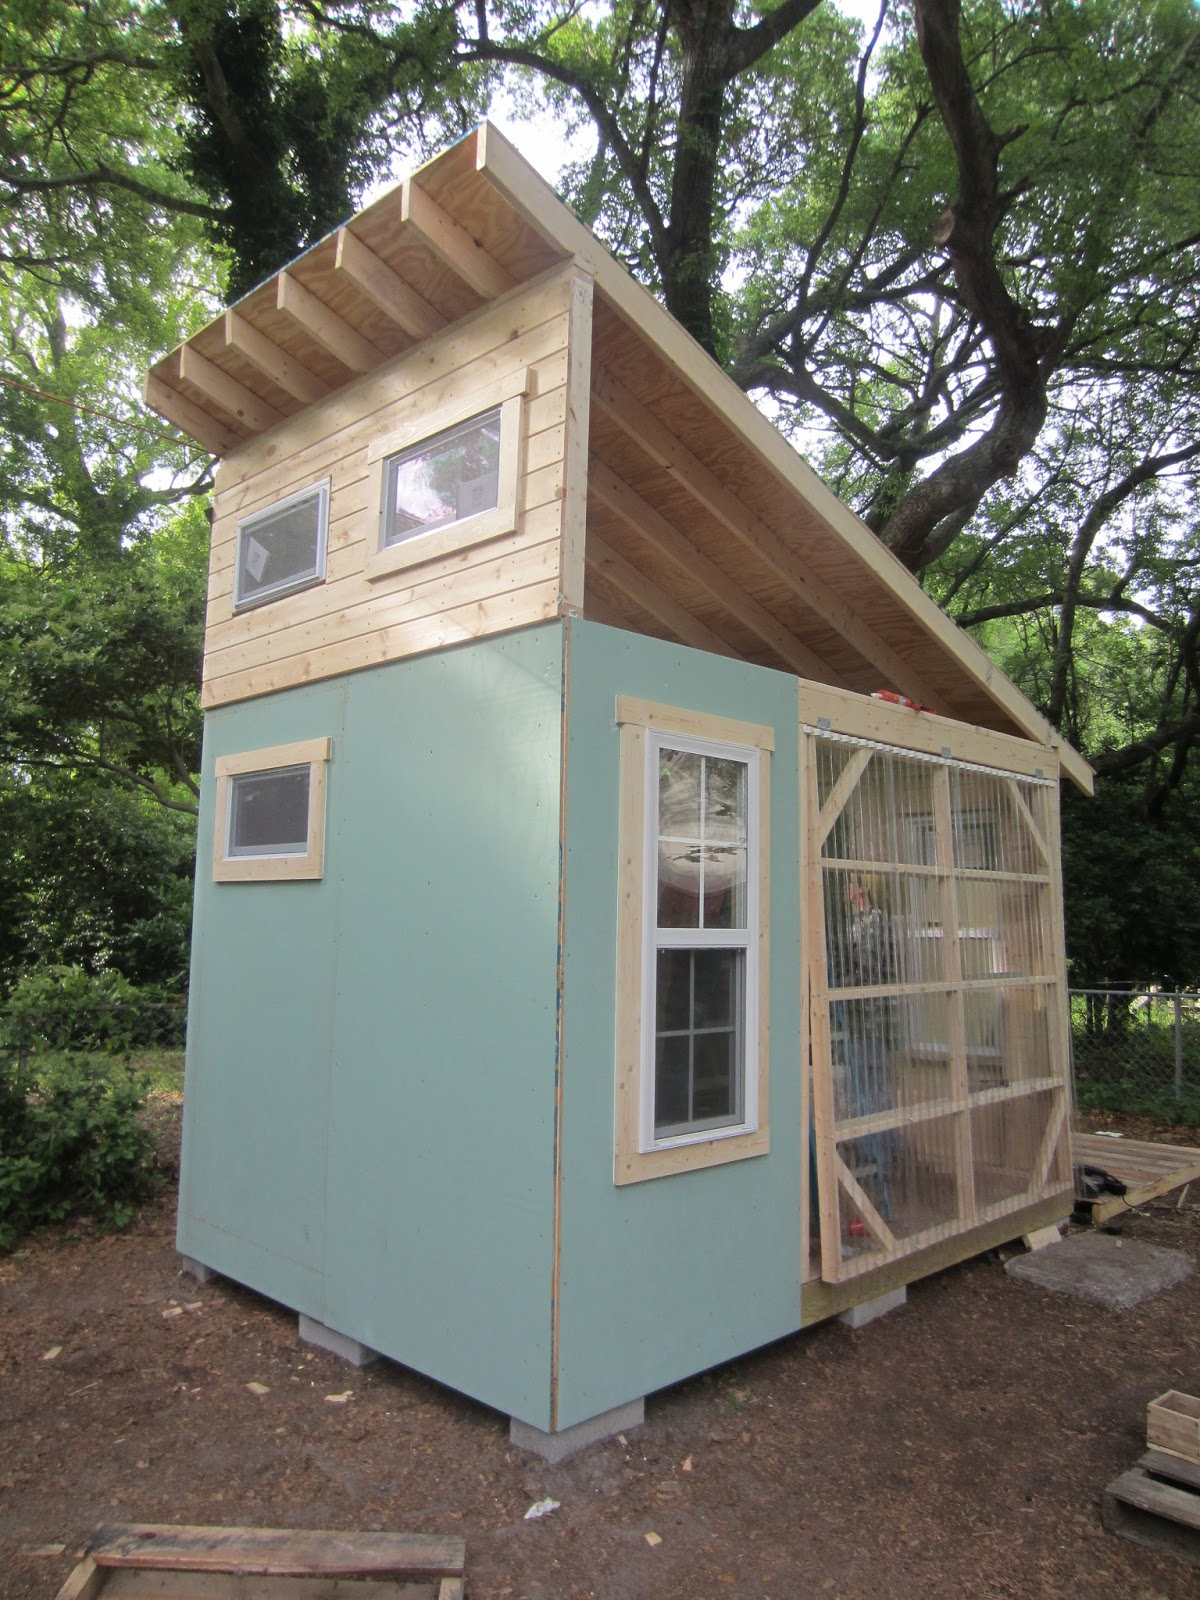 Tiny Home Designs: Relaxshacks.com: Tiny House Building Workshop In